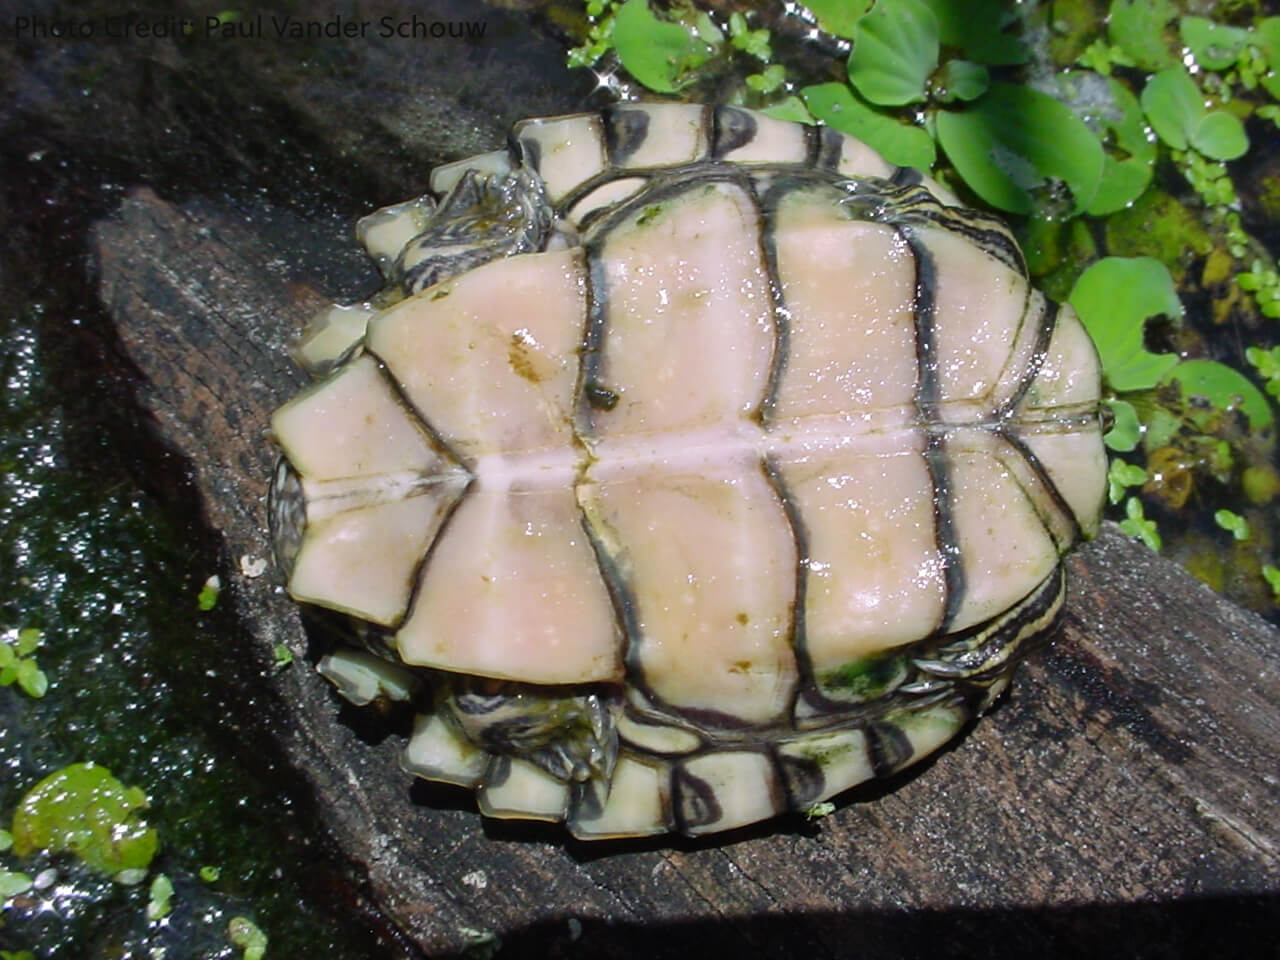 Juvenile Graptemys pearlensis (Pearl River Map Turtle) - Photo Credit: Paul Vander Schouw